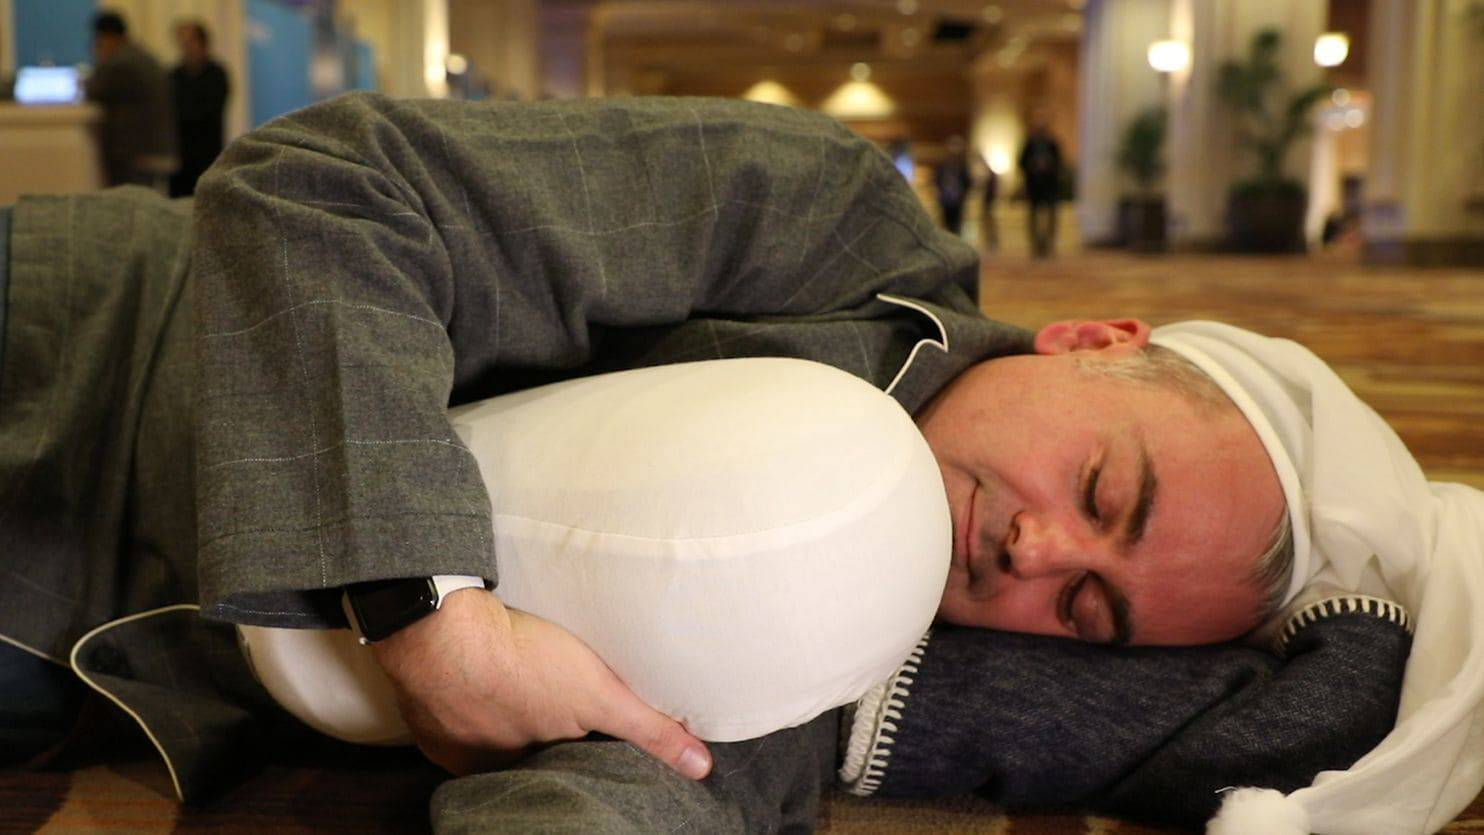 Columnist Geoffrey Fowler tries snuggling with Somnox on the floor of the CES trade show. (Yes, he brought pajamas.)